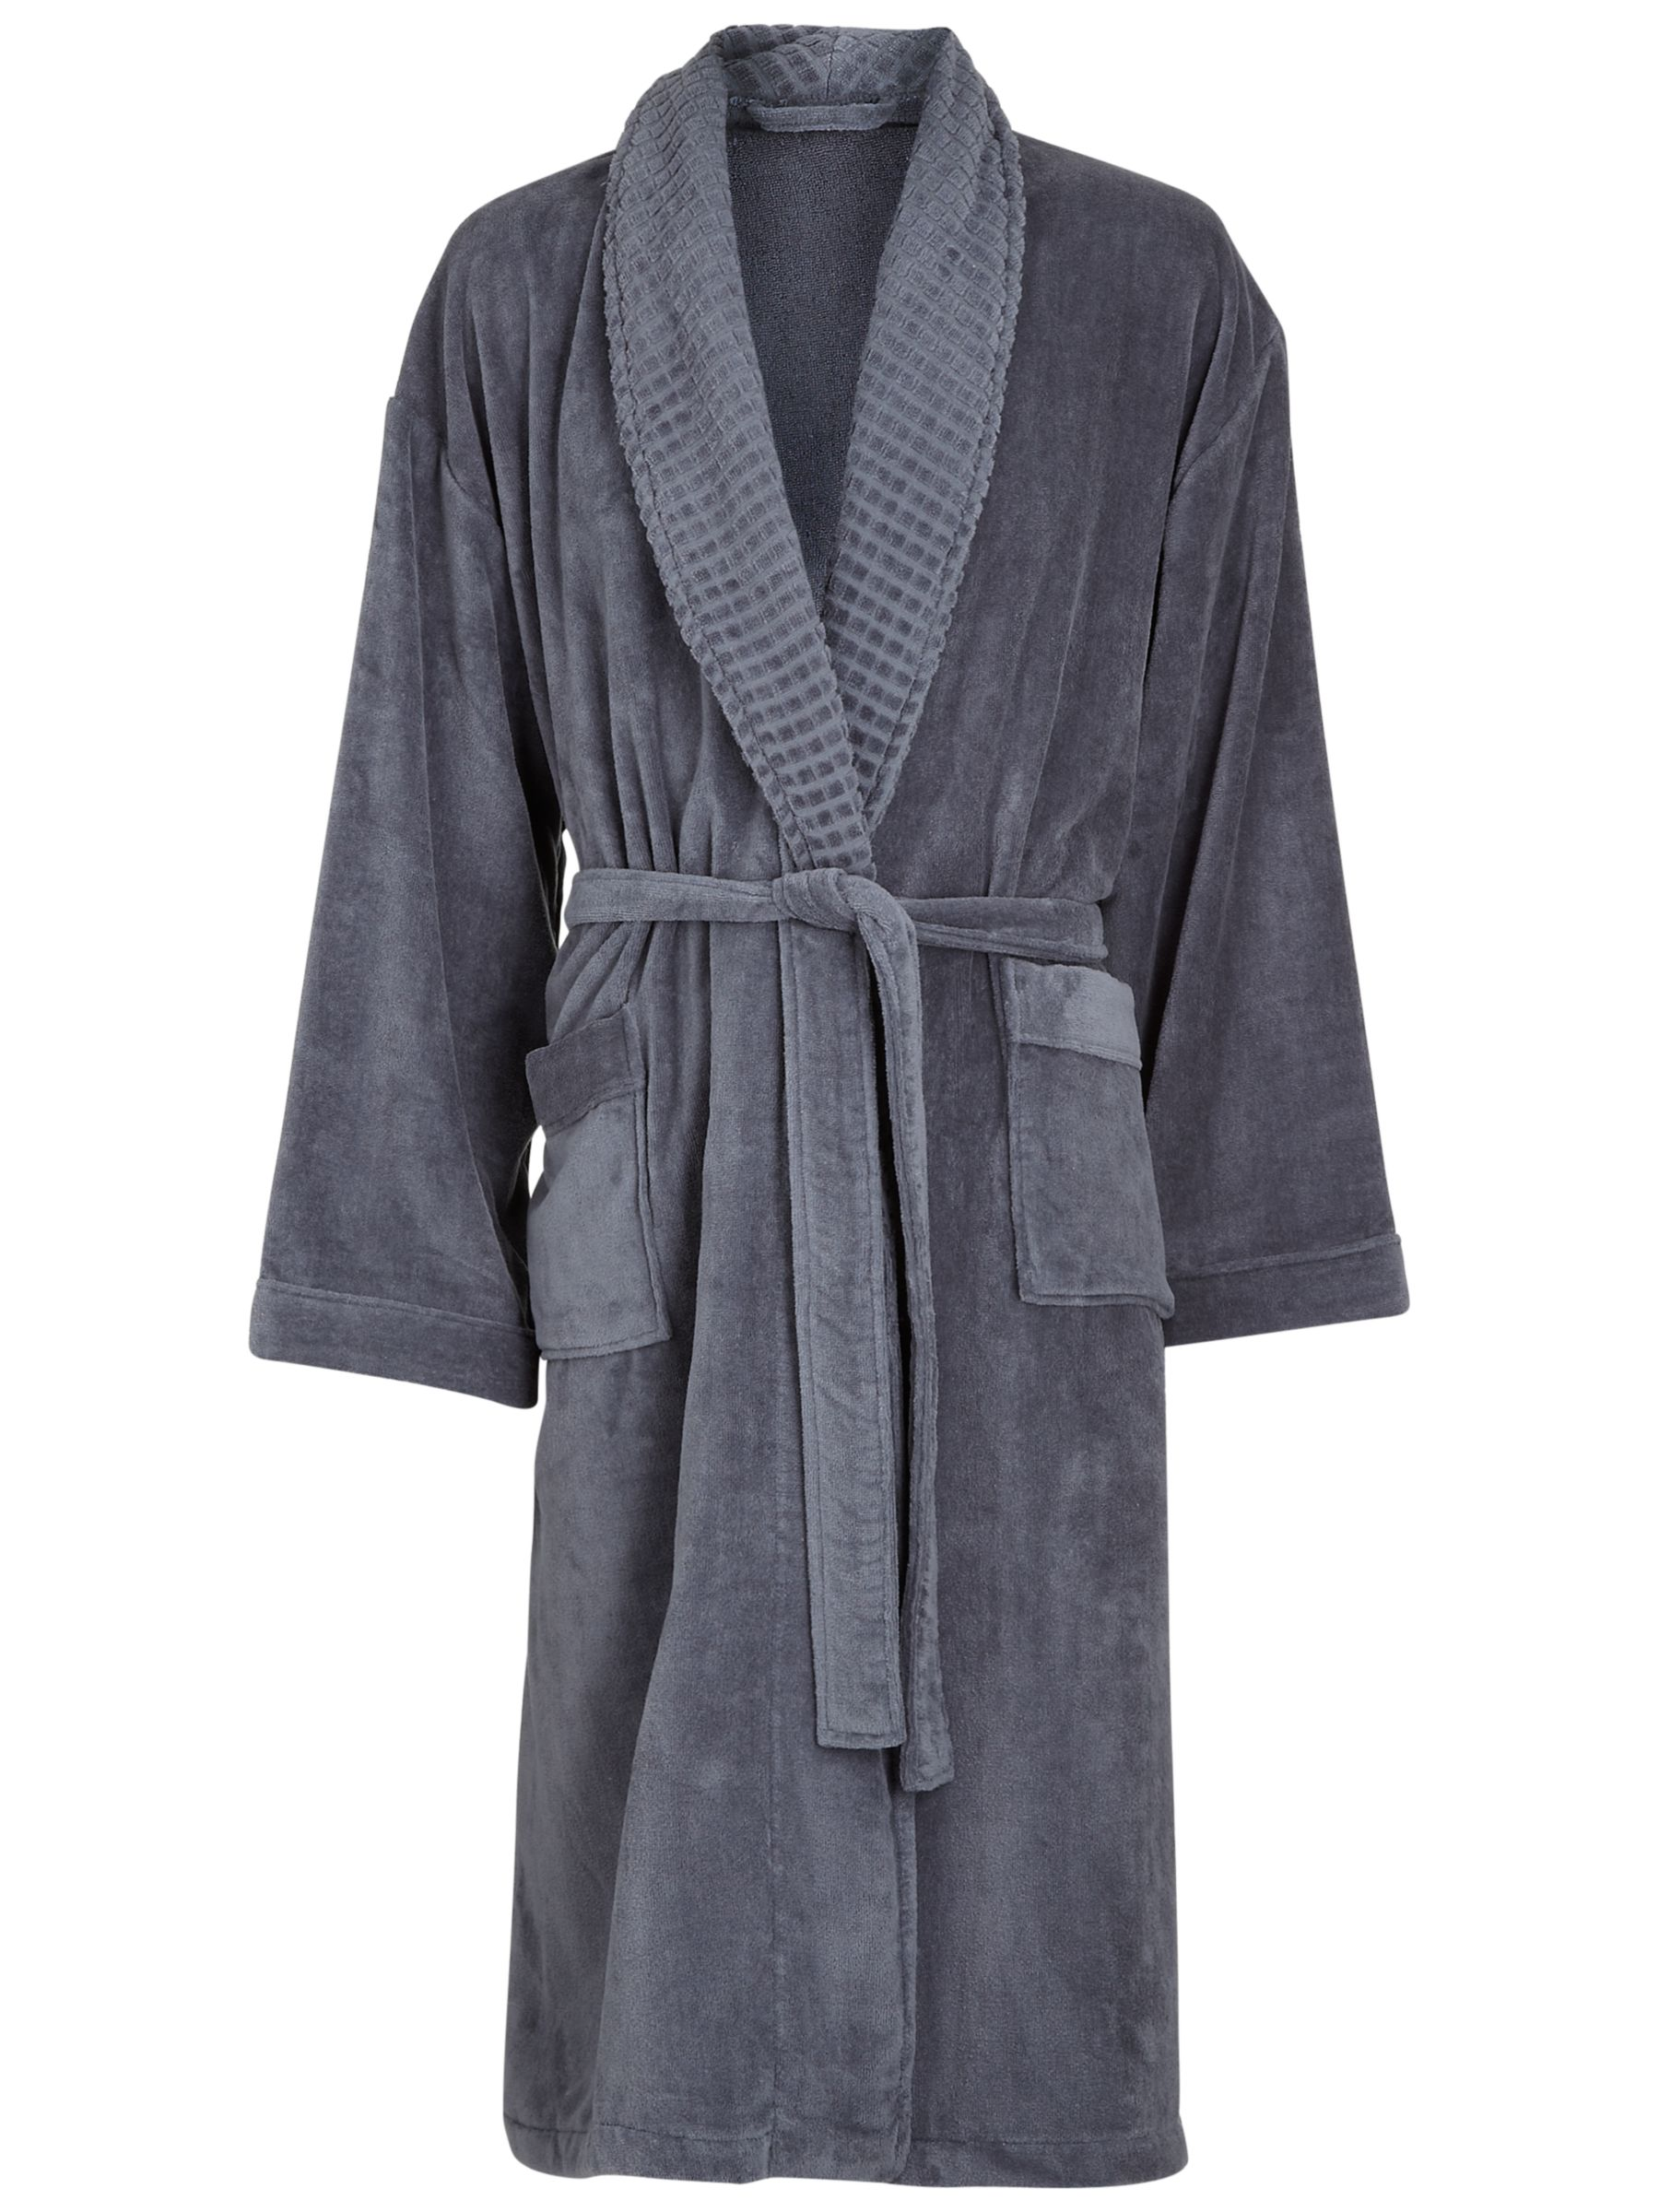 John Lewis Spa Unisex Bathrobe, Midnight